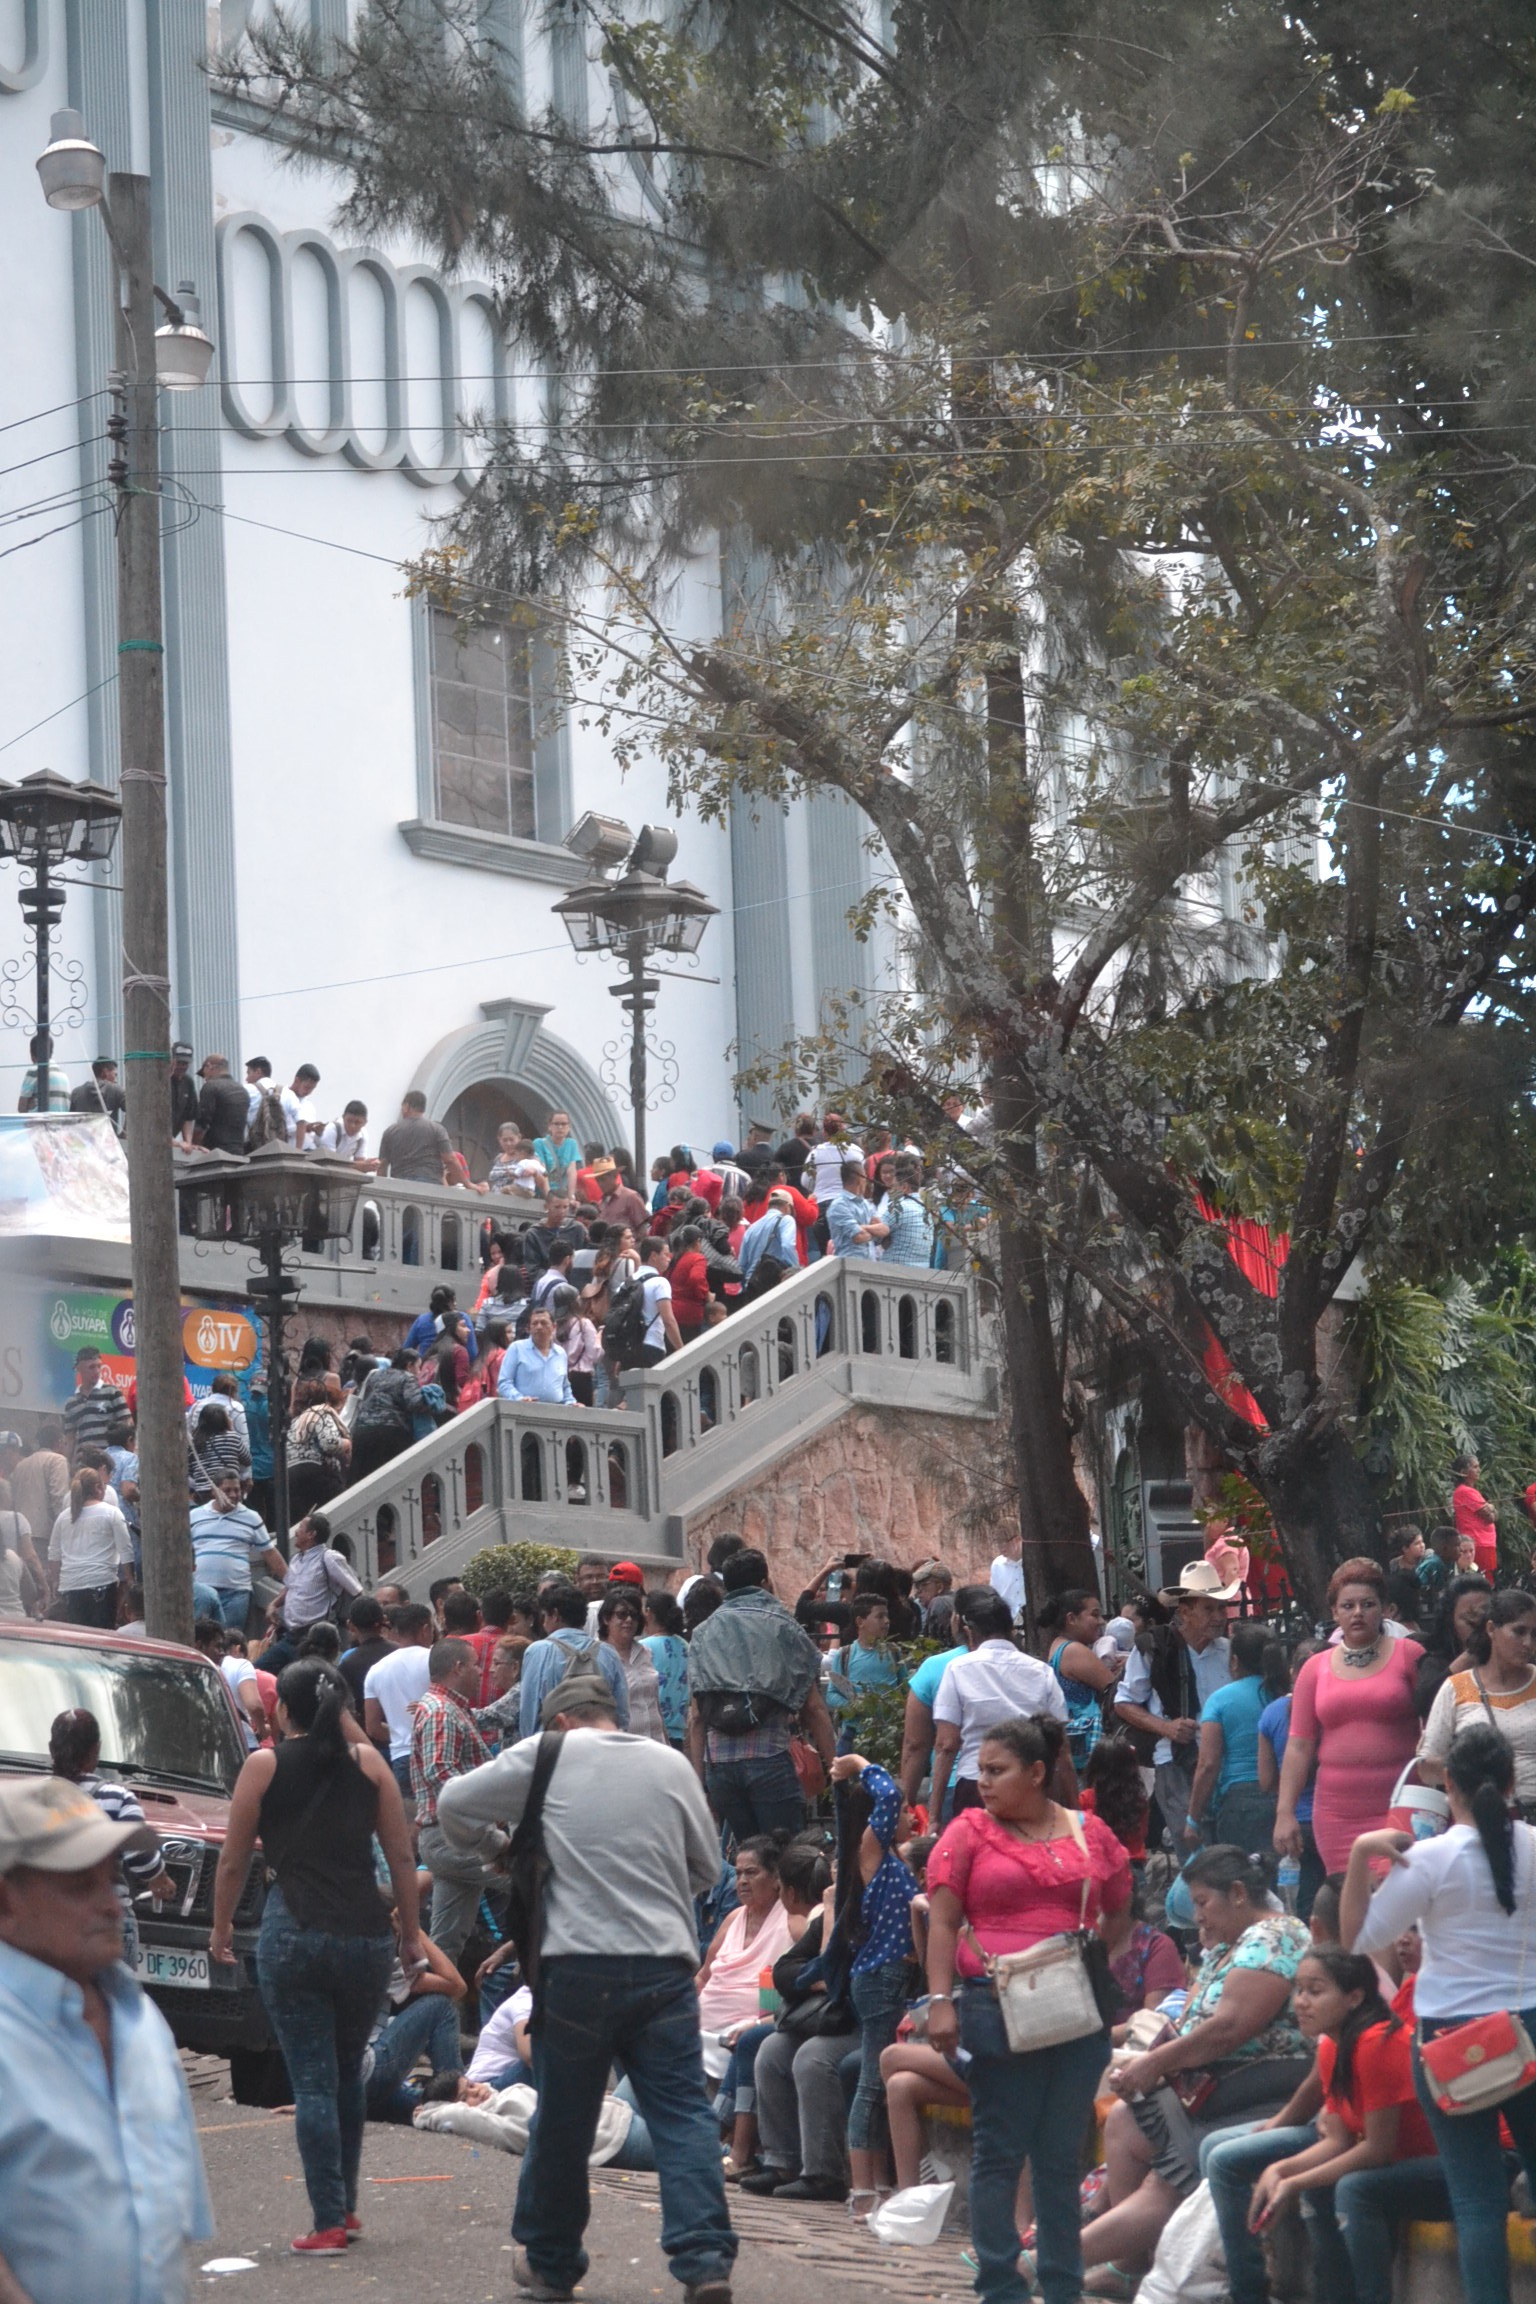 Crowd awaiting Mass in Honduras. (CT/Photo by Gail Finke)